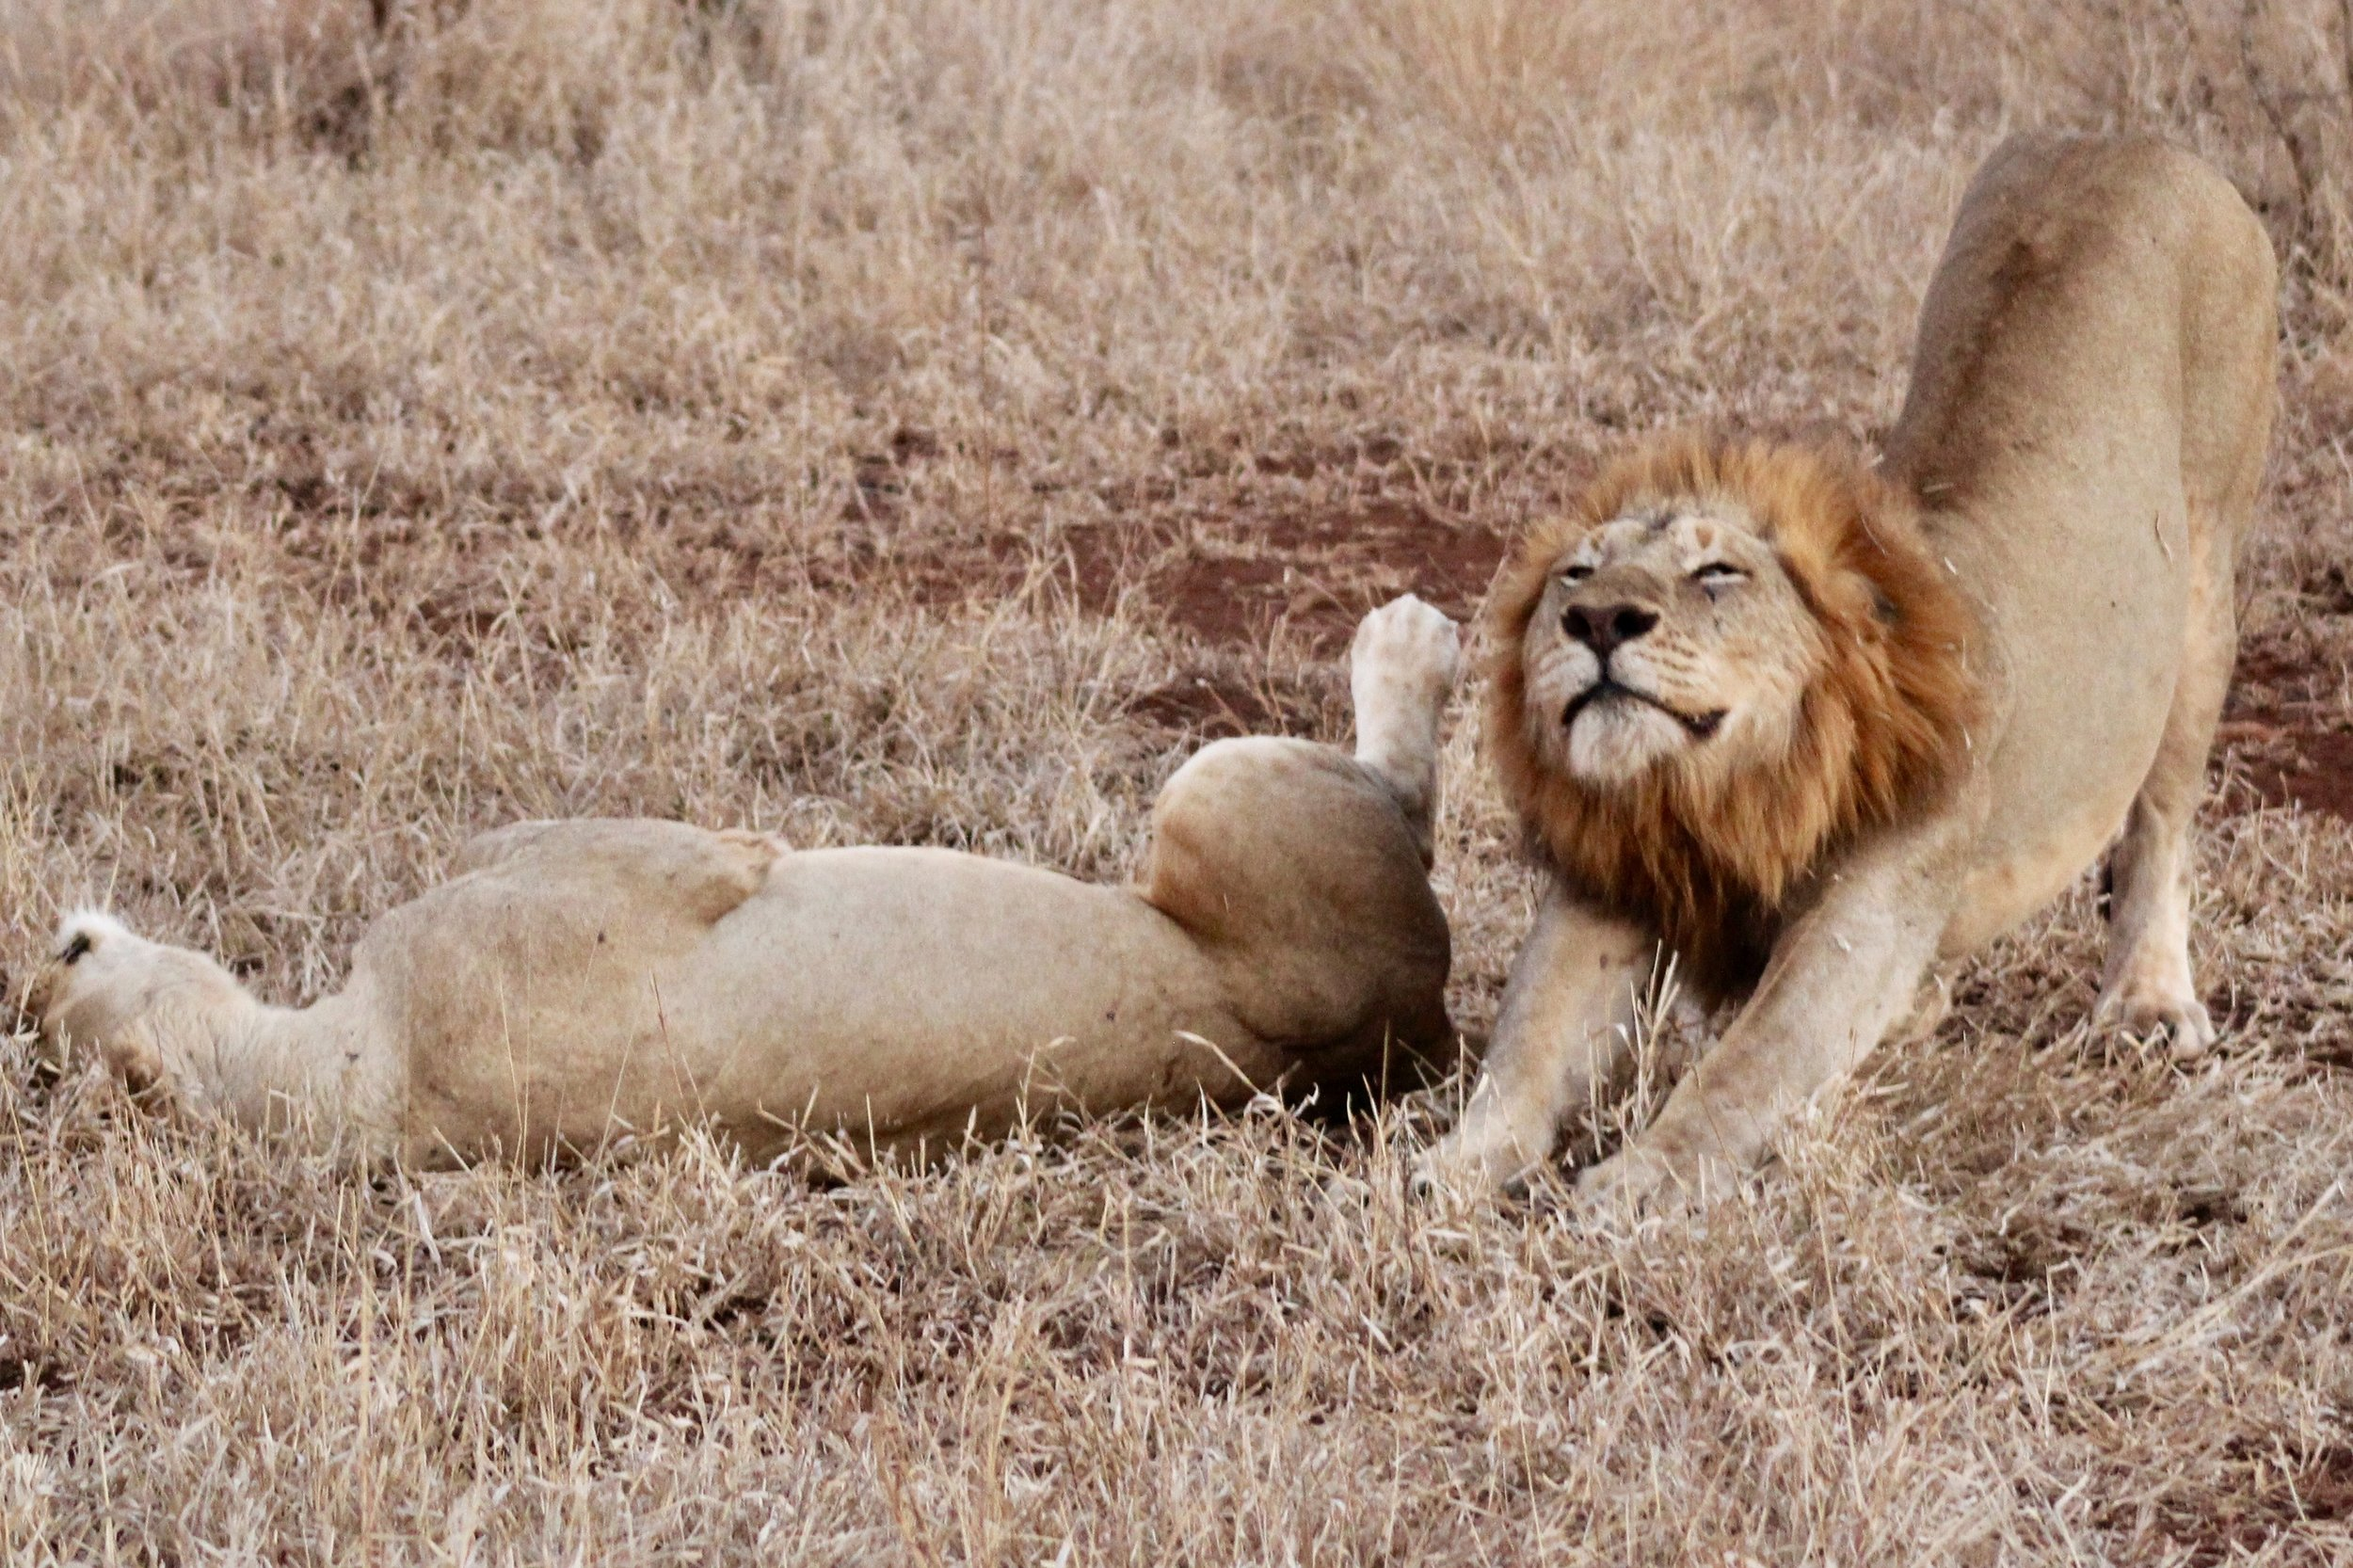 lion stretching like harps.jpg